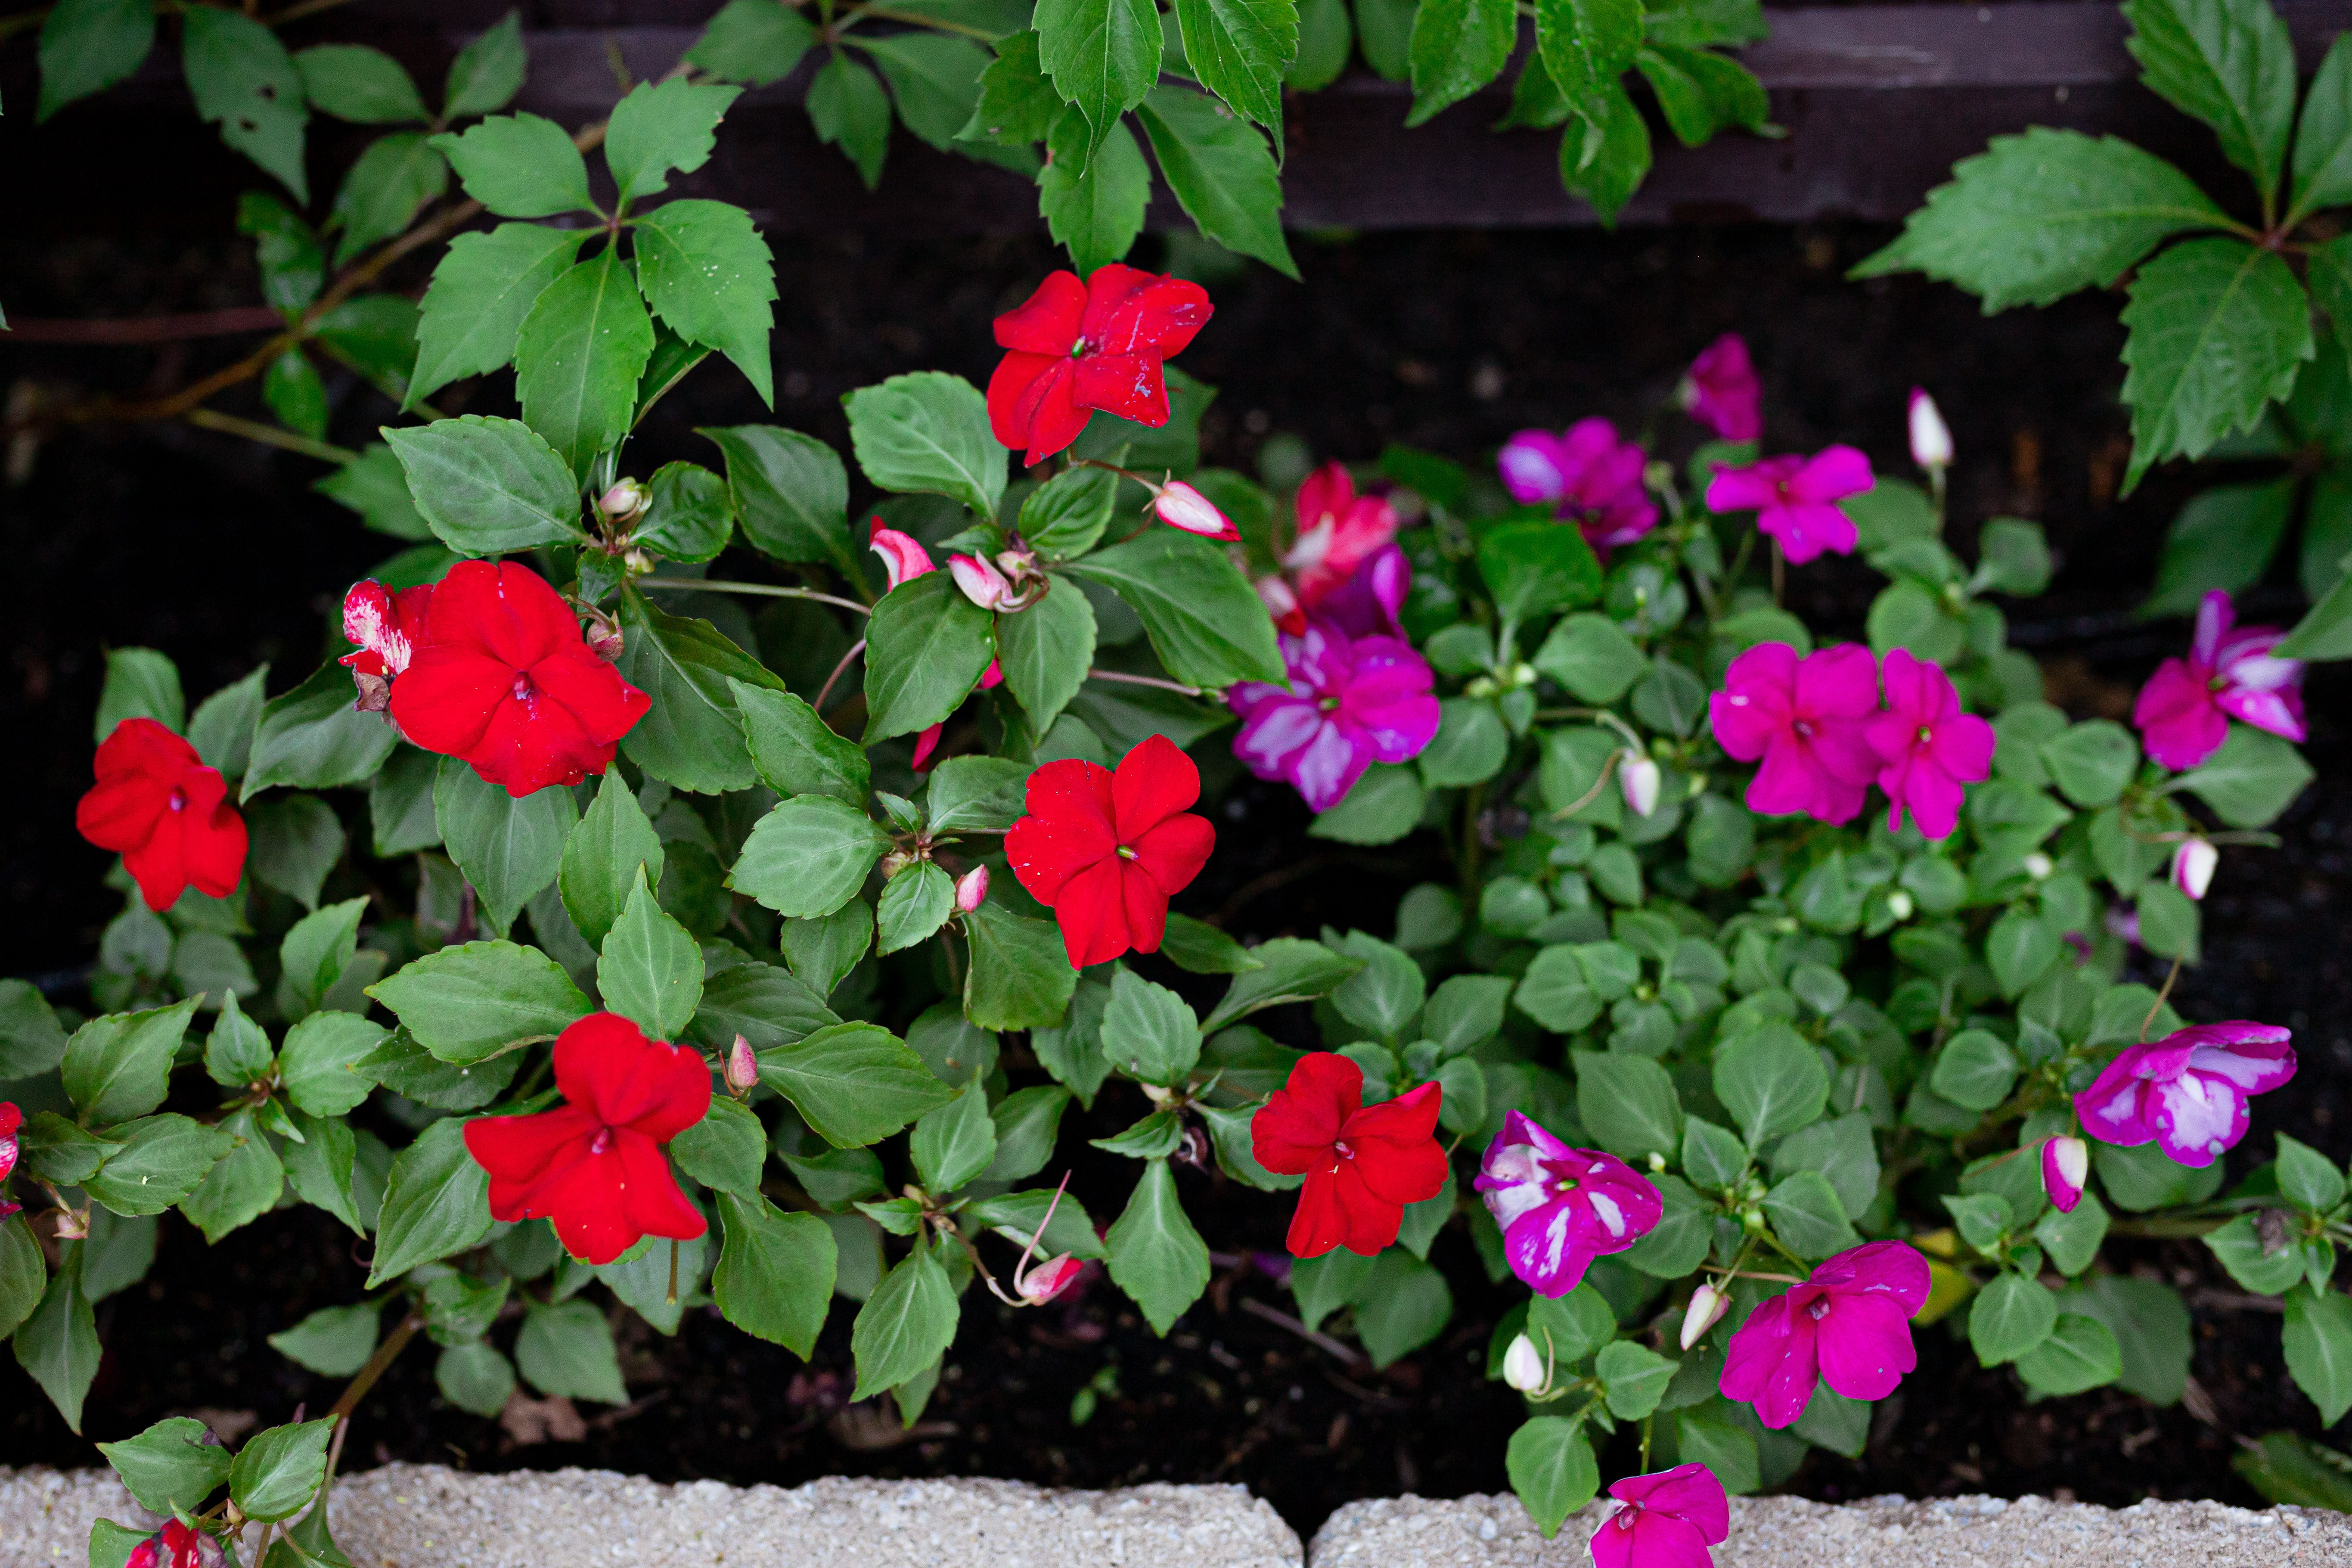 Impatiens Plant Care Growing Guide